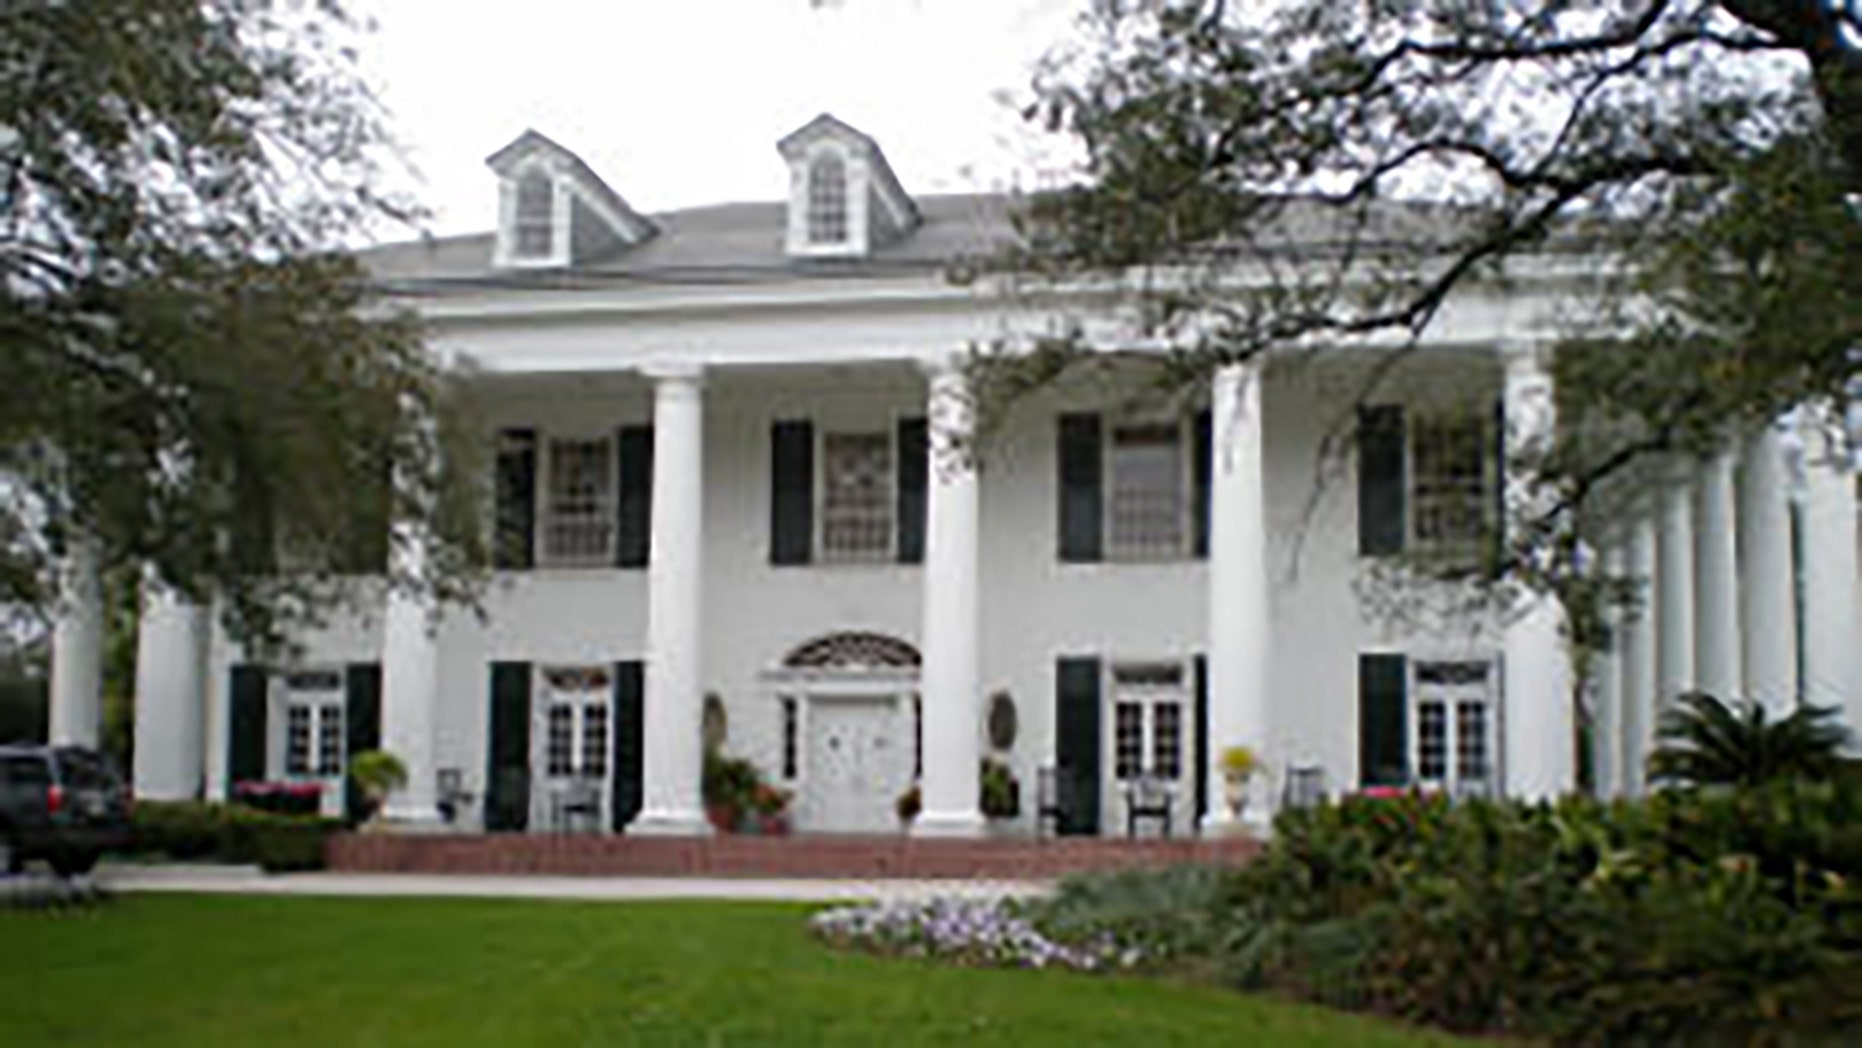 Louisiana Governor's Mansion. State police announced the mansion experienced an extraoridinary security breach last week when a man trespassed into the building and broke an antique table before falling asleep on a couch.